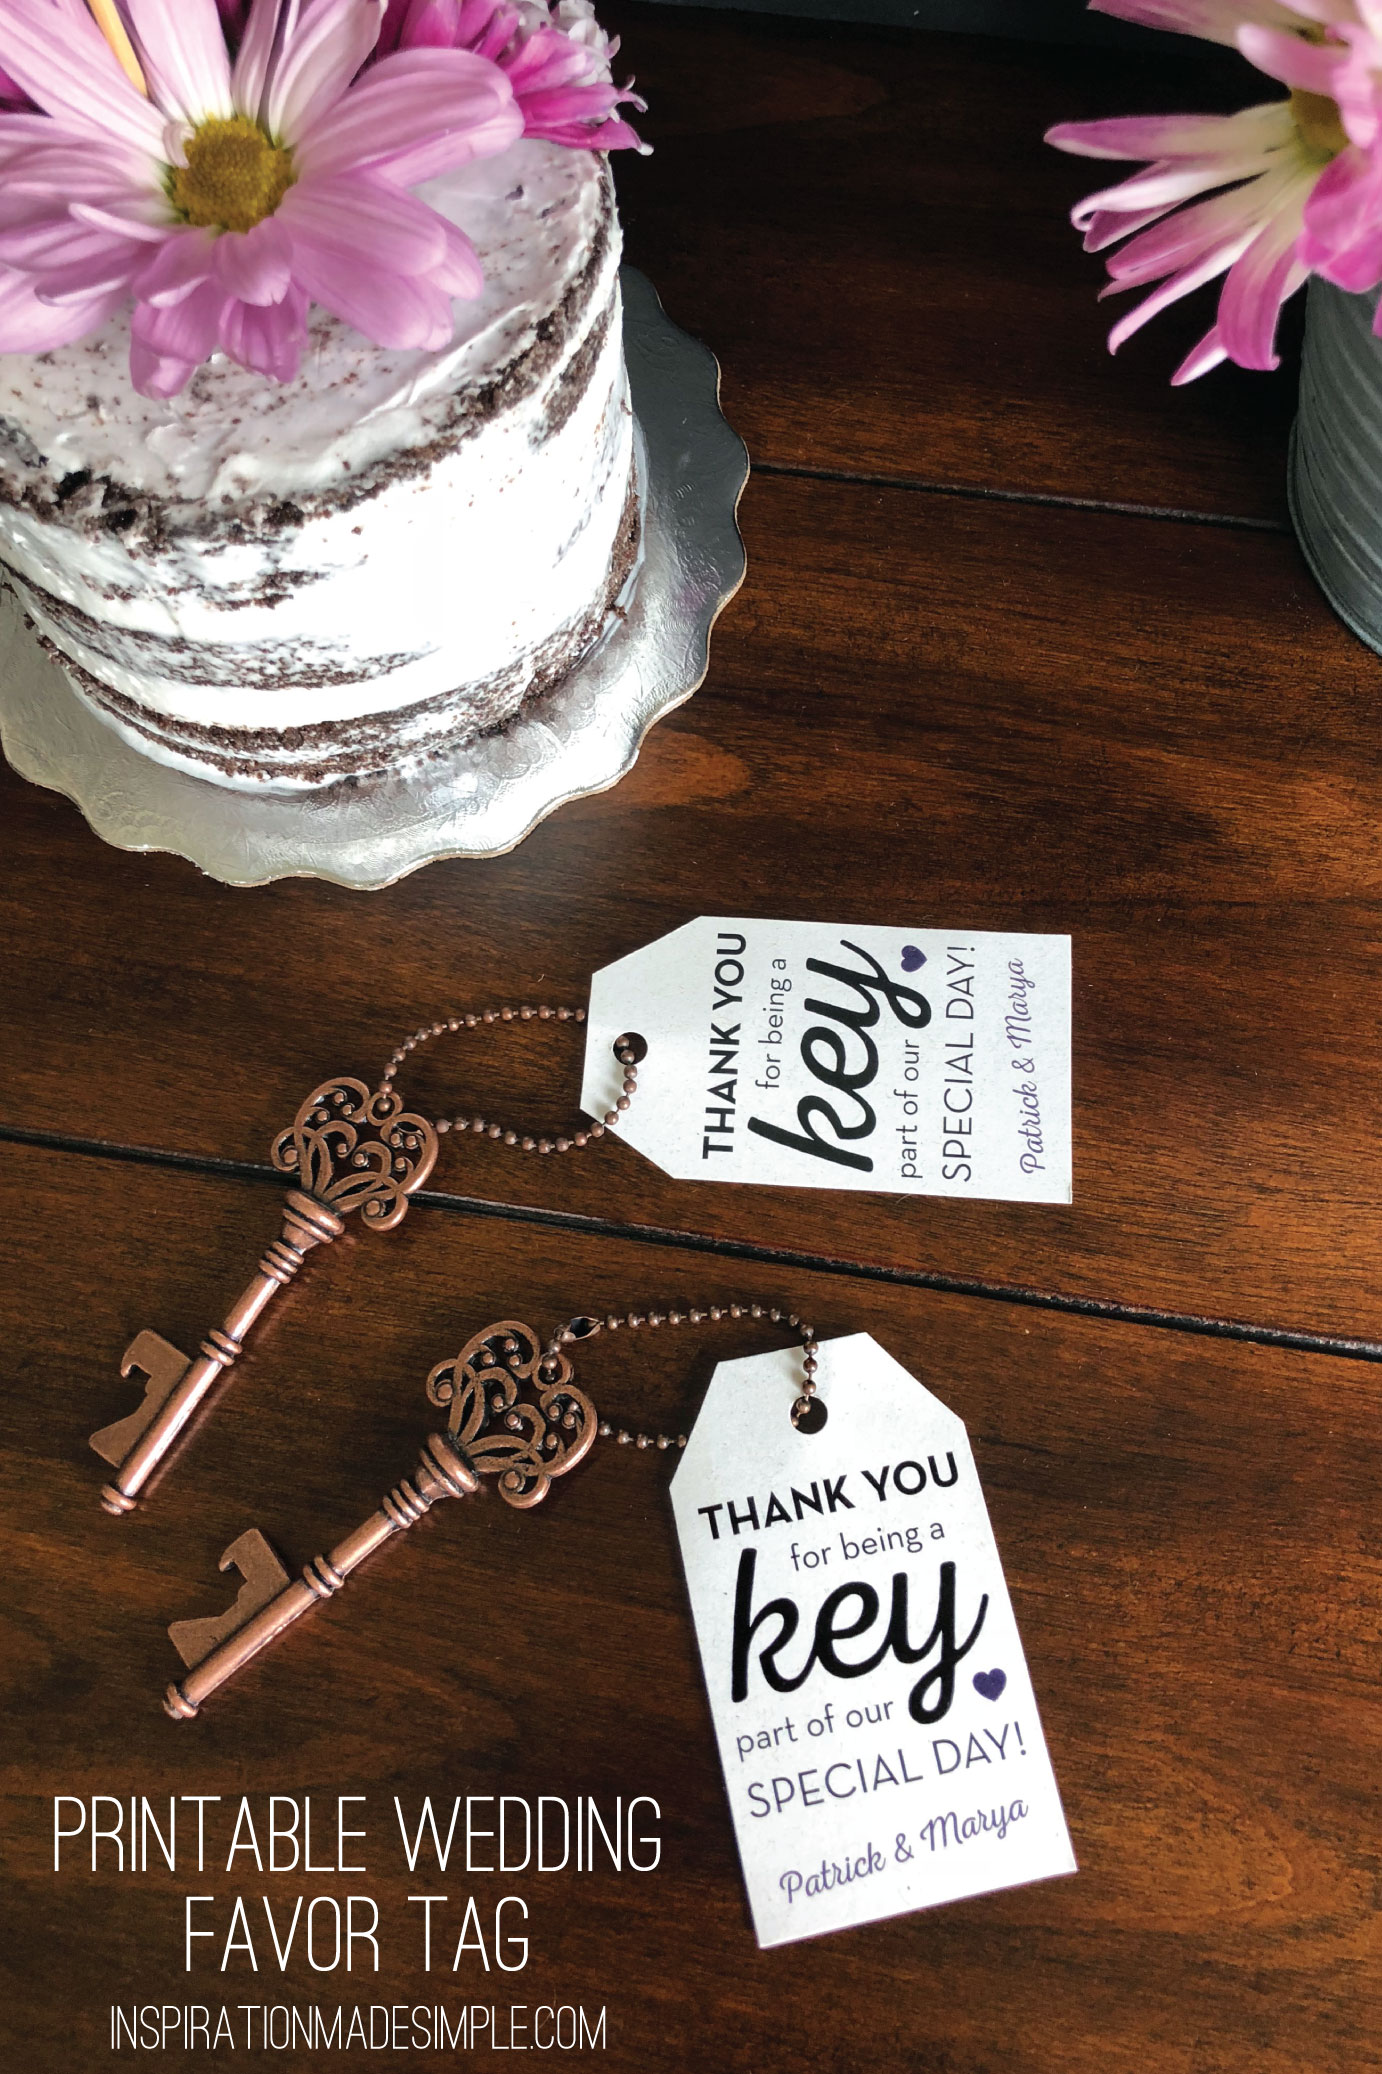 Key Bottle Opener Wedding Favor Idea with Printable Favor Tag